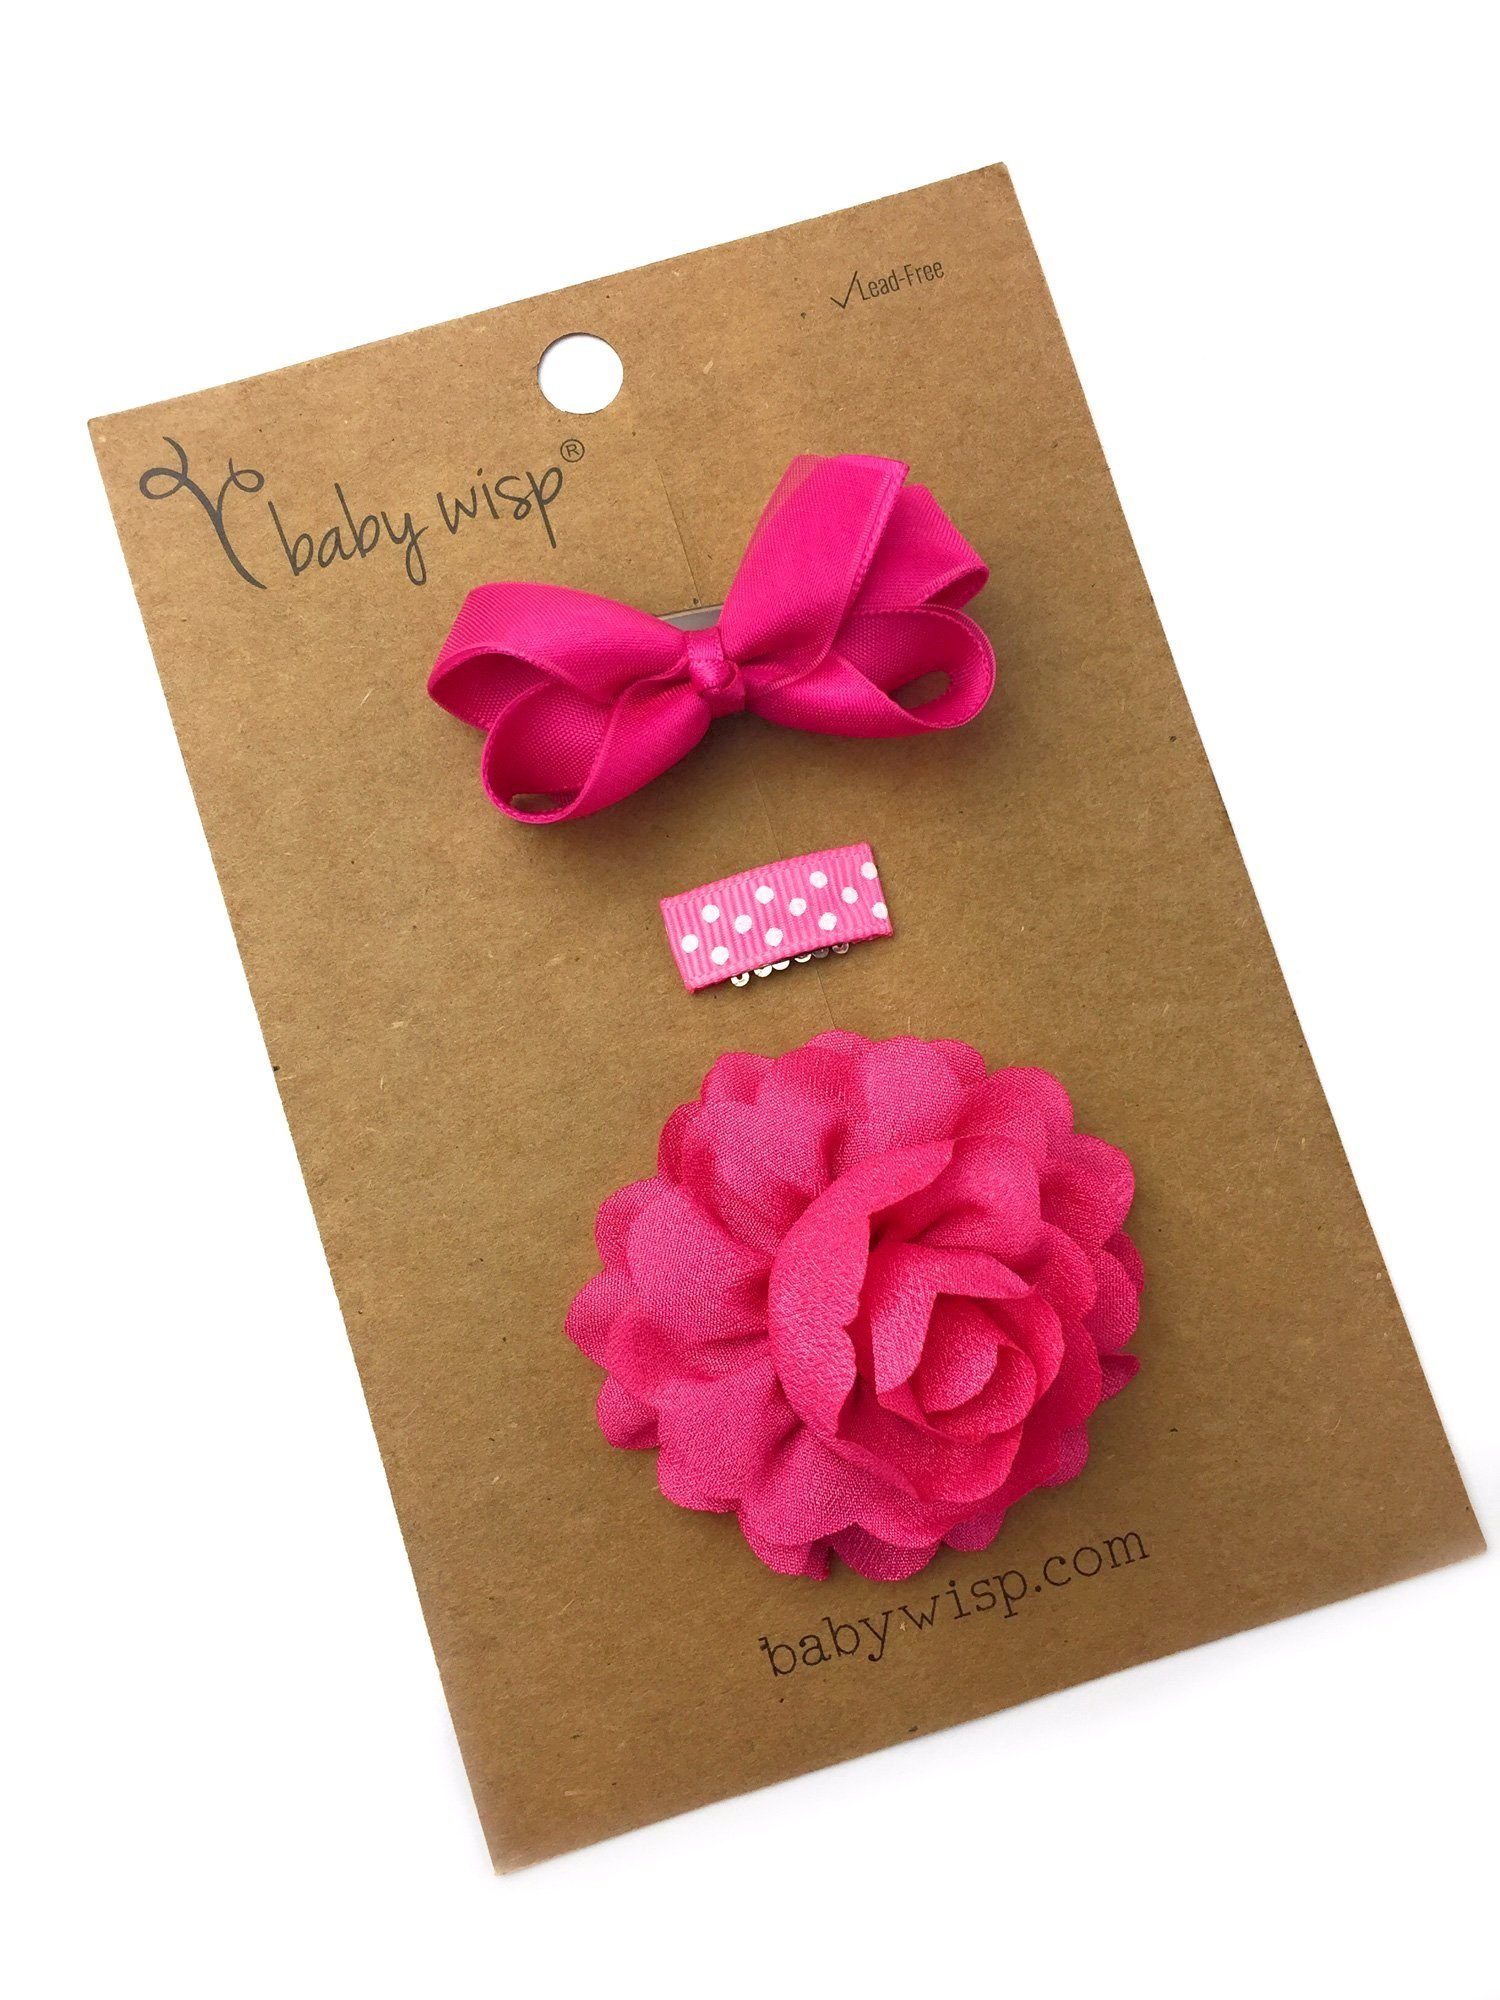 Baby Wisp Mini Latch Clip Satin Boutique Bow Grosgrain Ribbon Clip Flower Accessory Baby Girl Gift Set (Fuchsia) by Baby Wisp (Image #2)